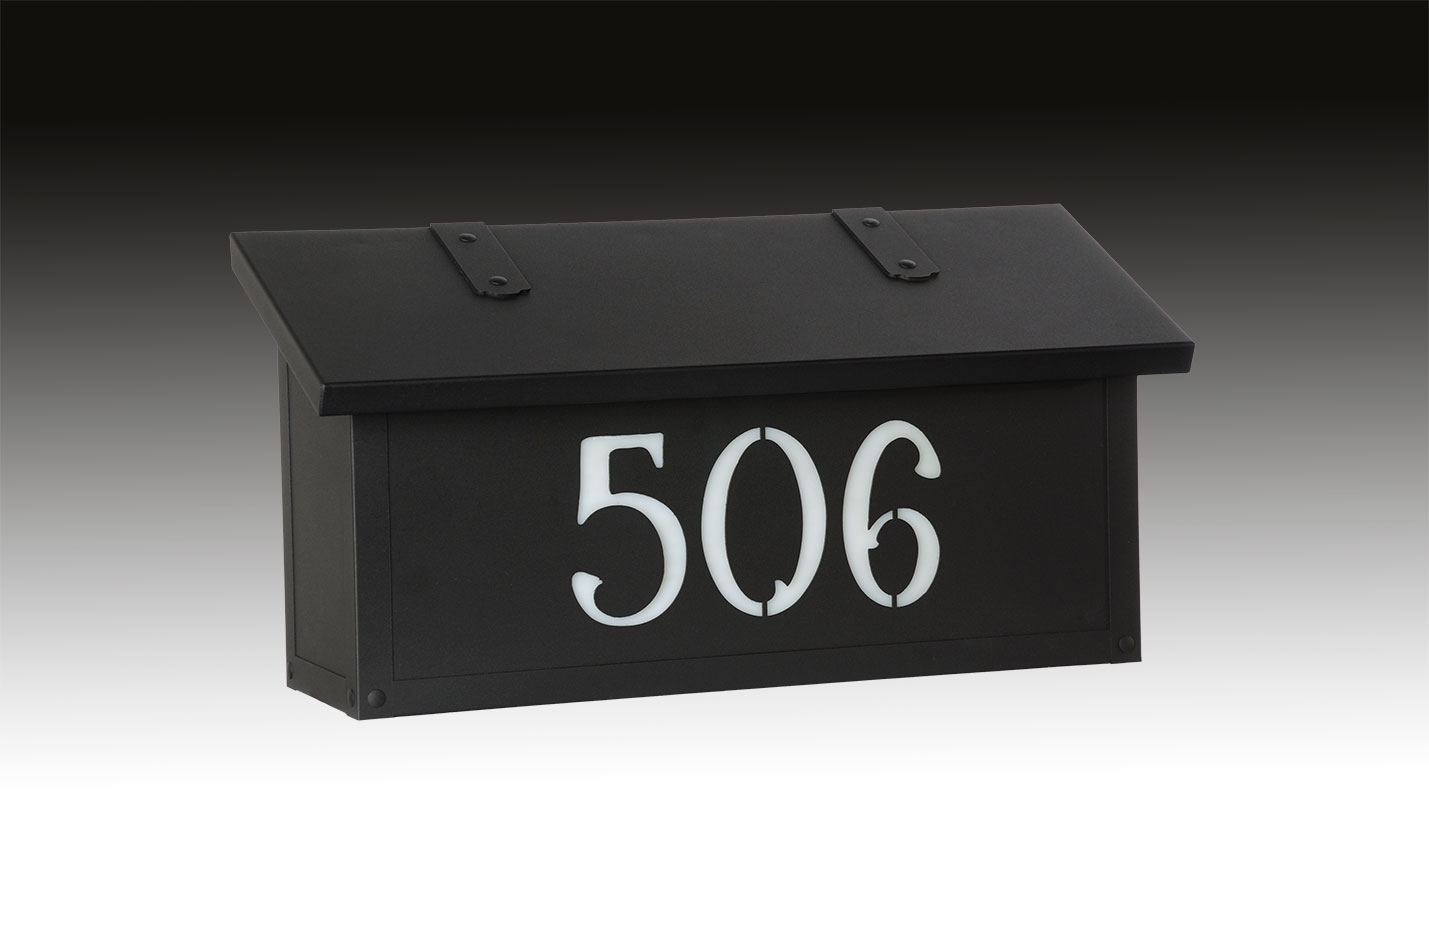 "277AF-2-HN-TB-WW  Classic horizontal mail box with custom house numbers in textured black with wispy white glass. Size: 8-1/4"" h x 16-1/2"" w x 5-5/8"" d. Other finishes and glass colors available."